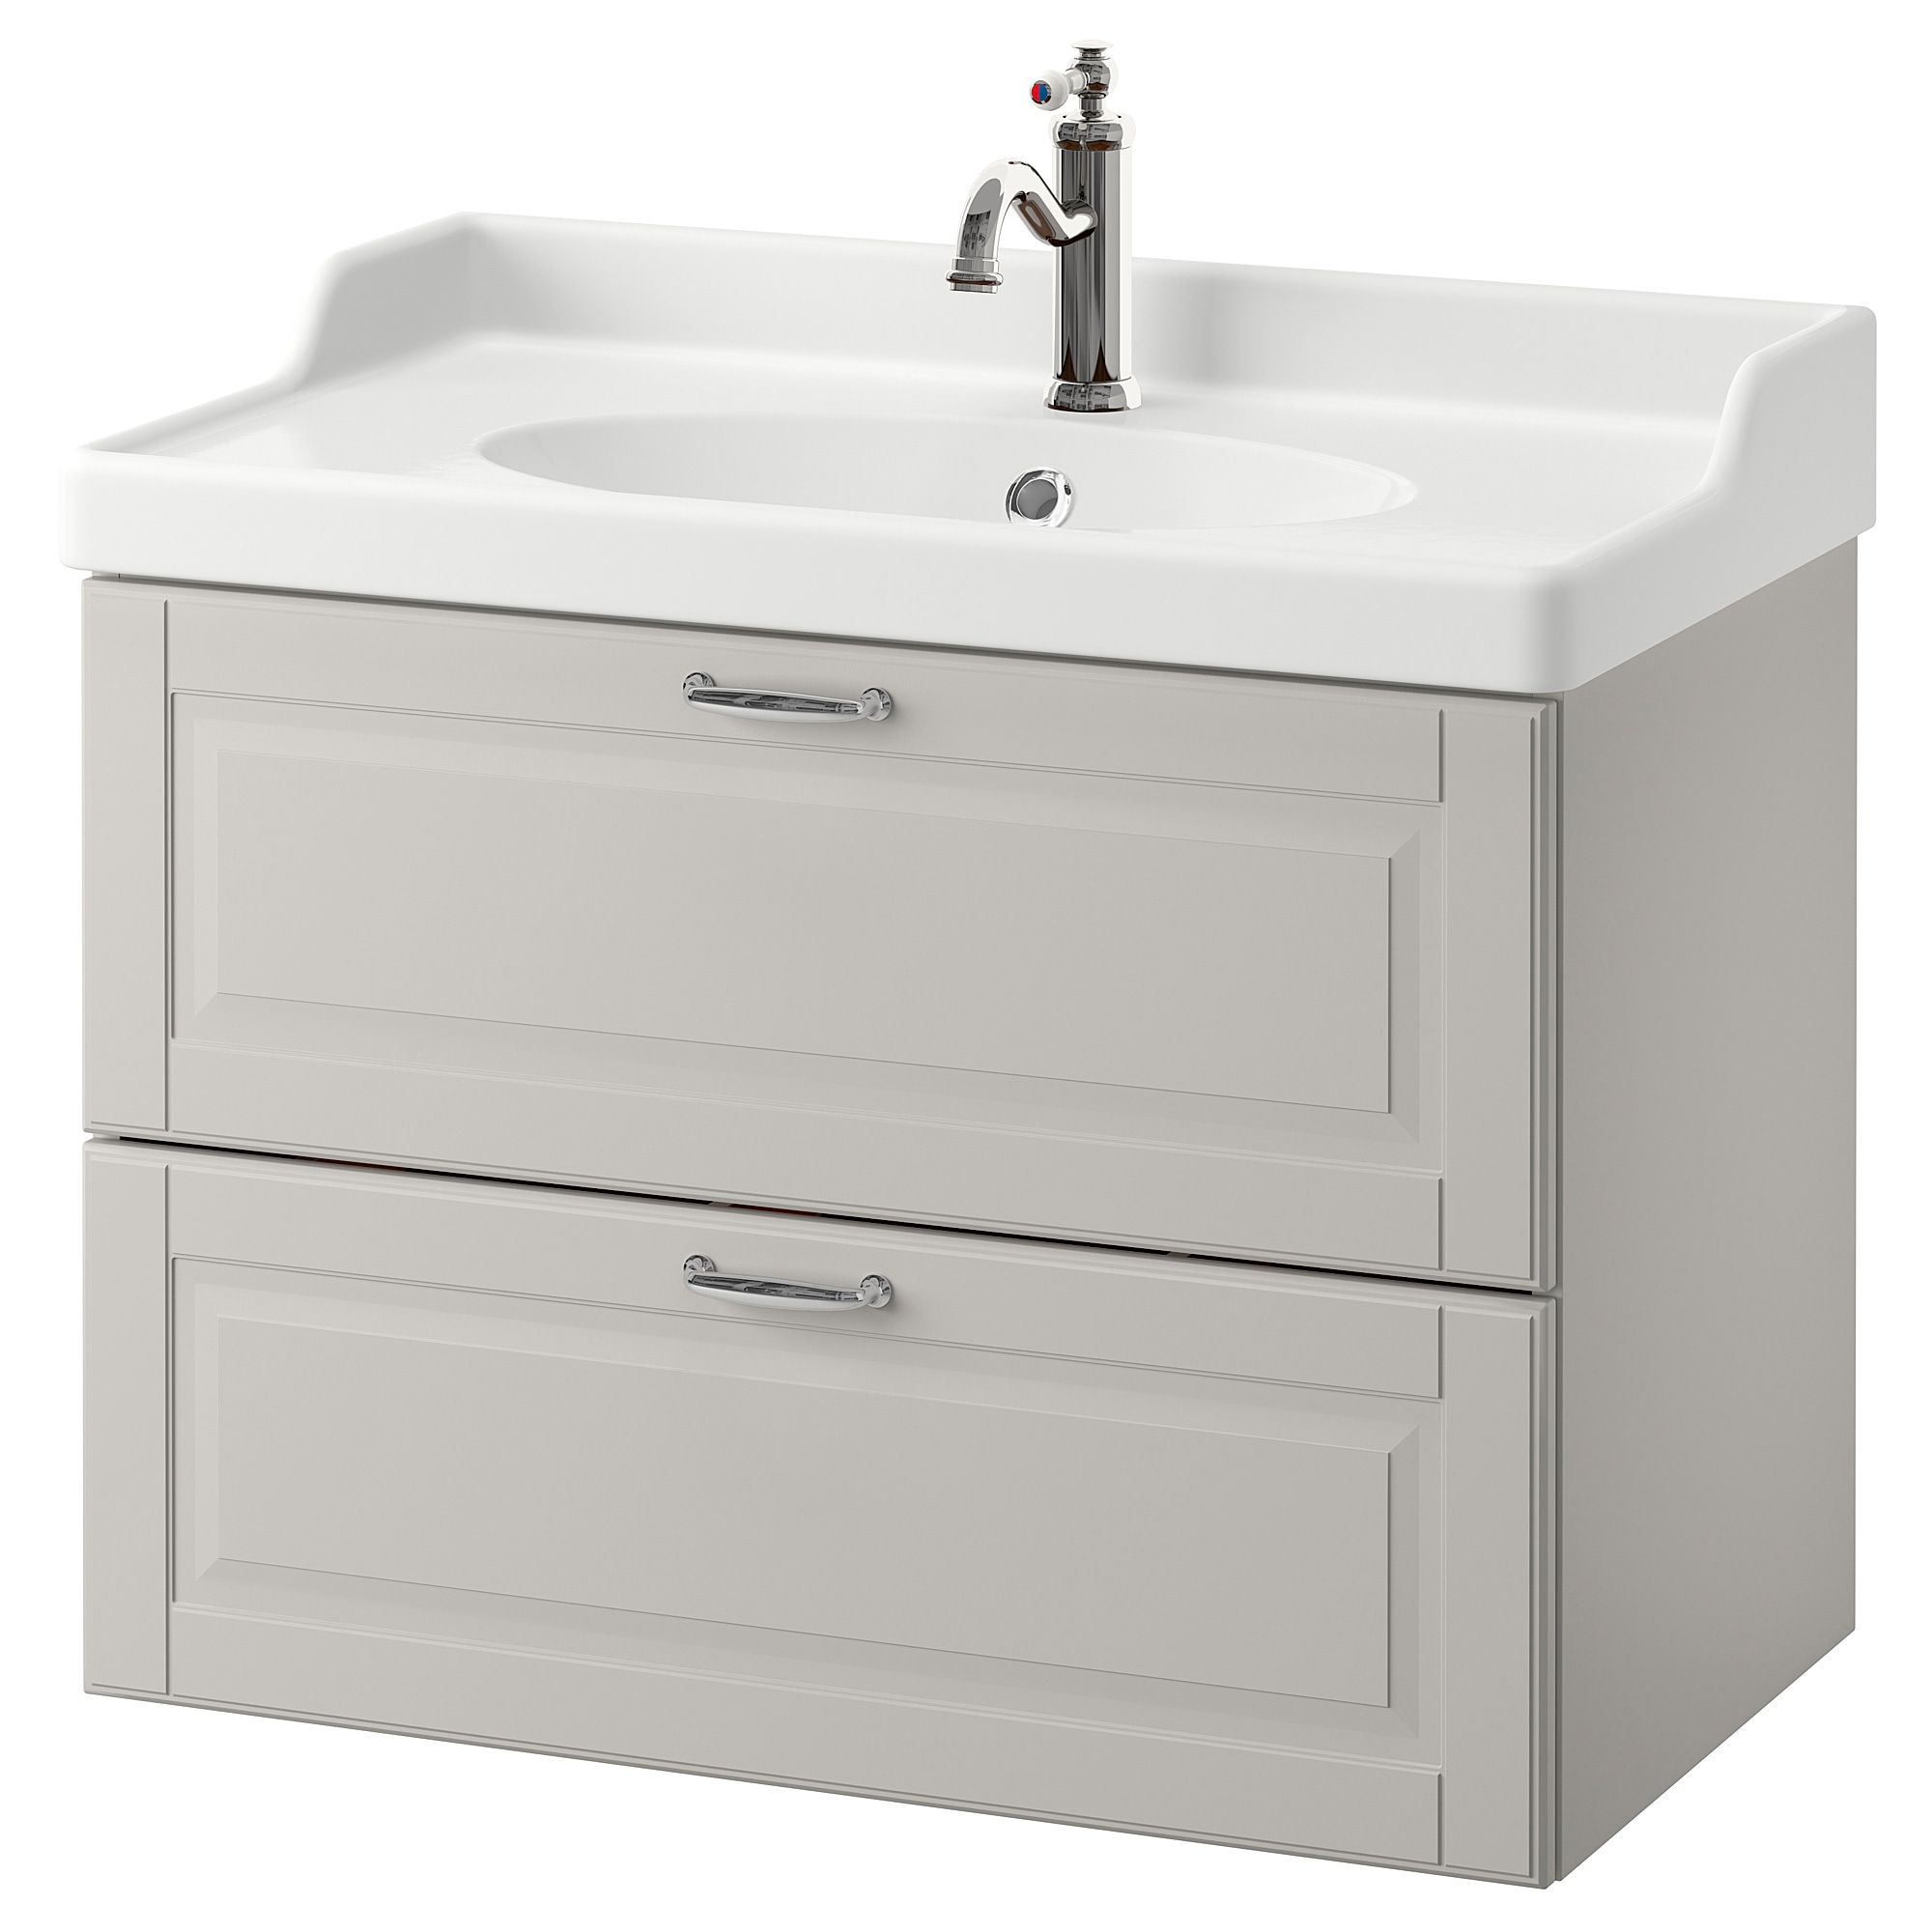 godmorgon rttviken sink cabinet with 2 drawers - Bathroom Vanity And Sink